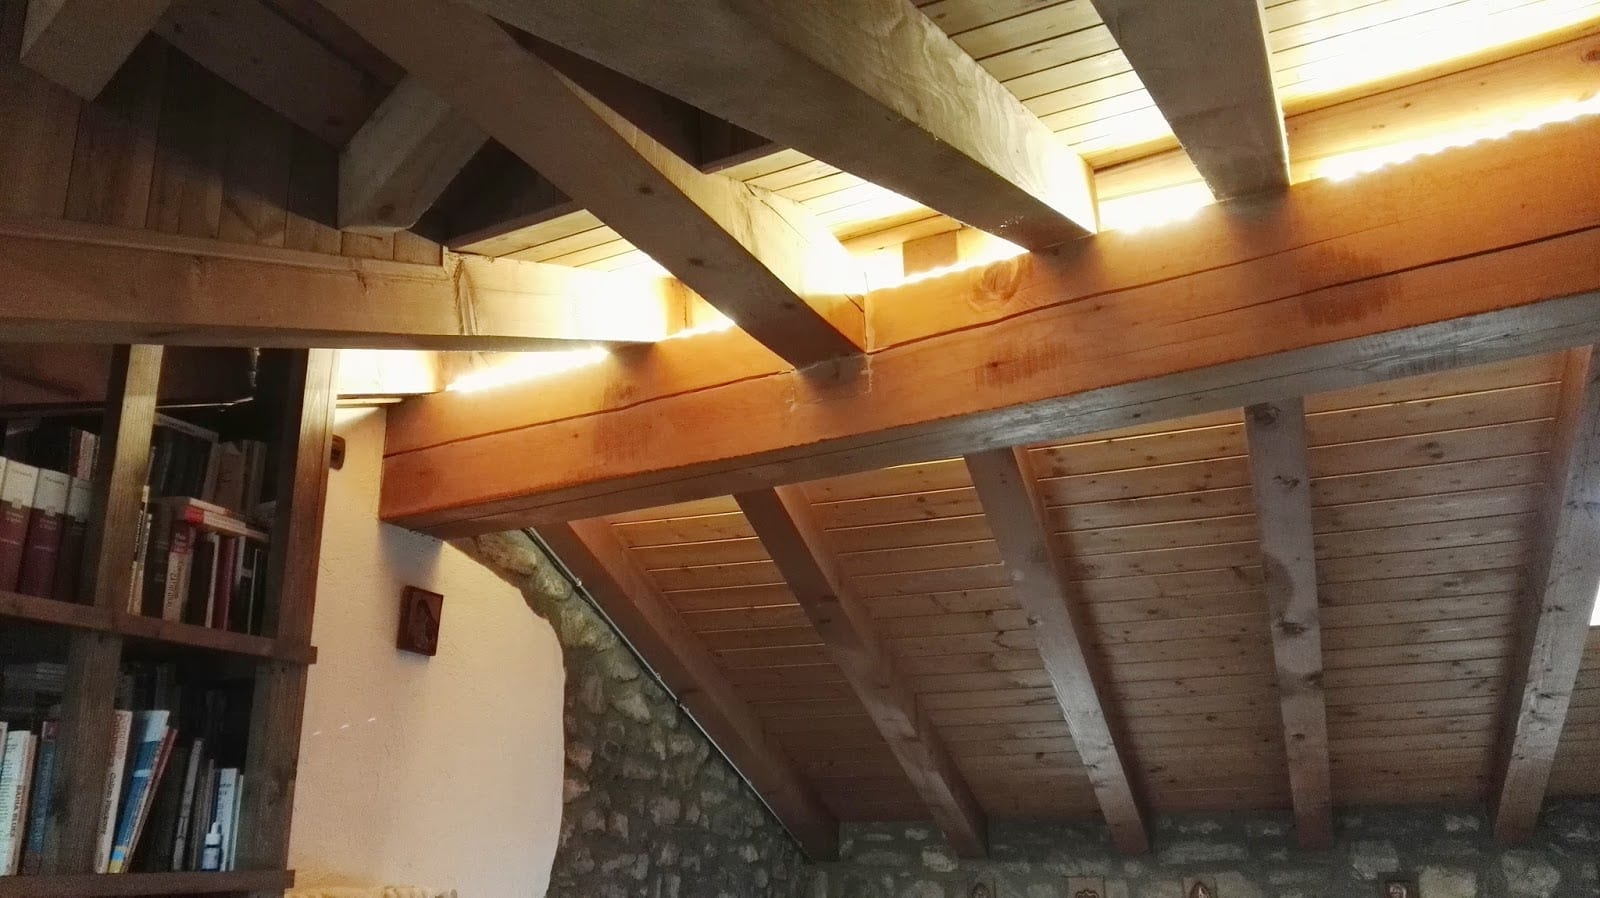 Travi A Vista Illuminazione tips: how to light up wooden beams | lid design